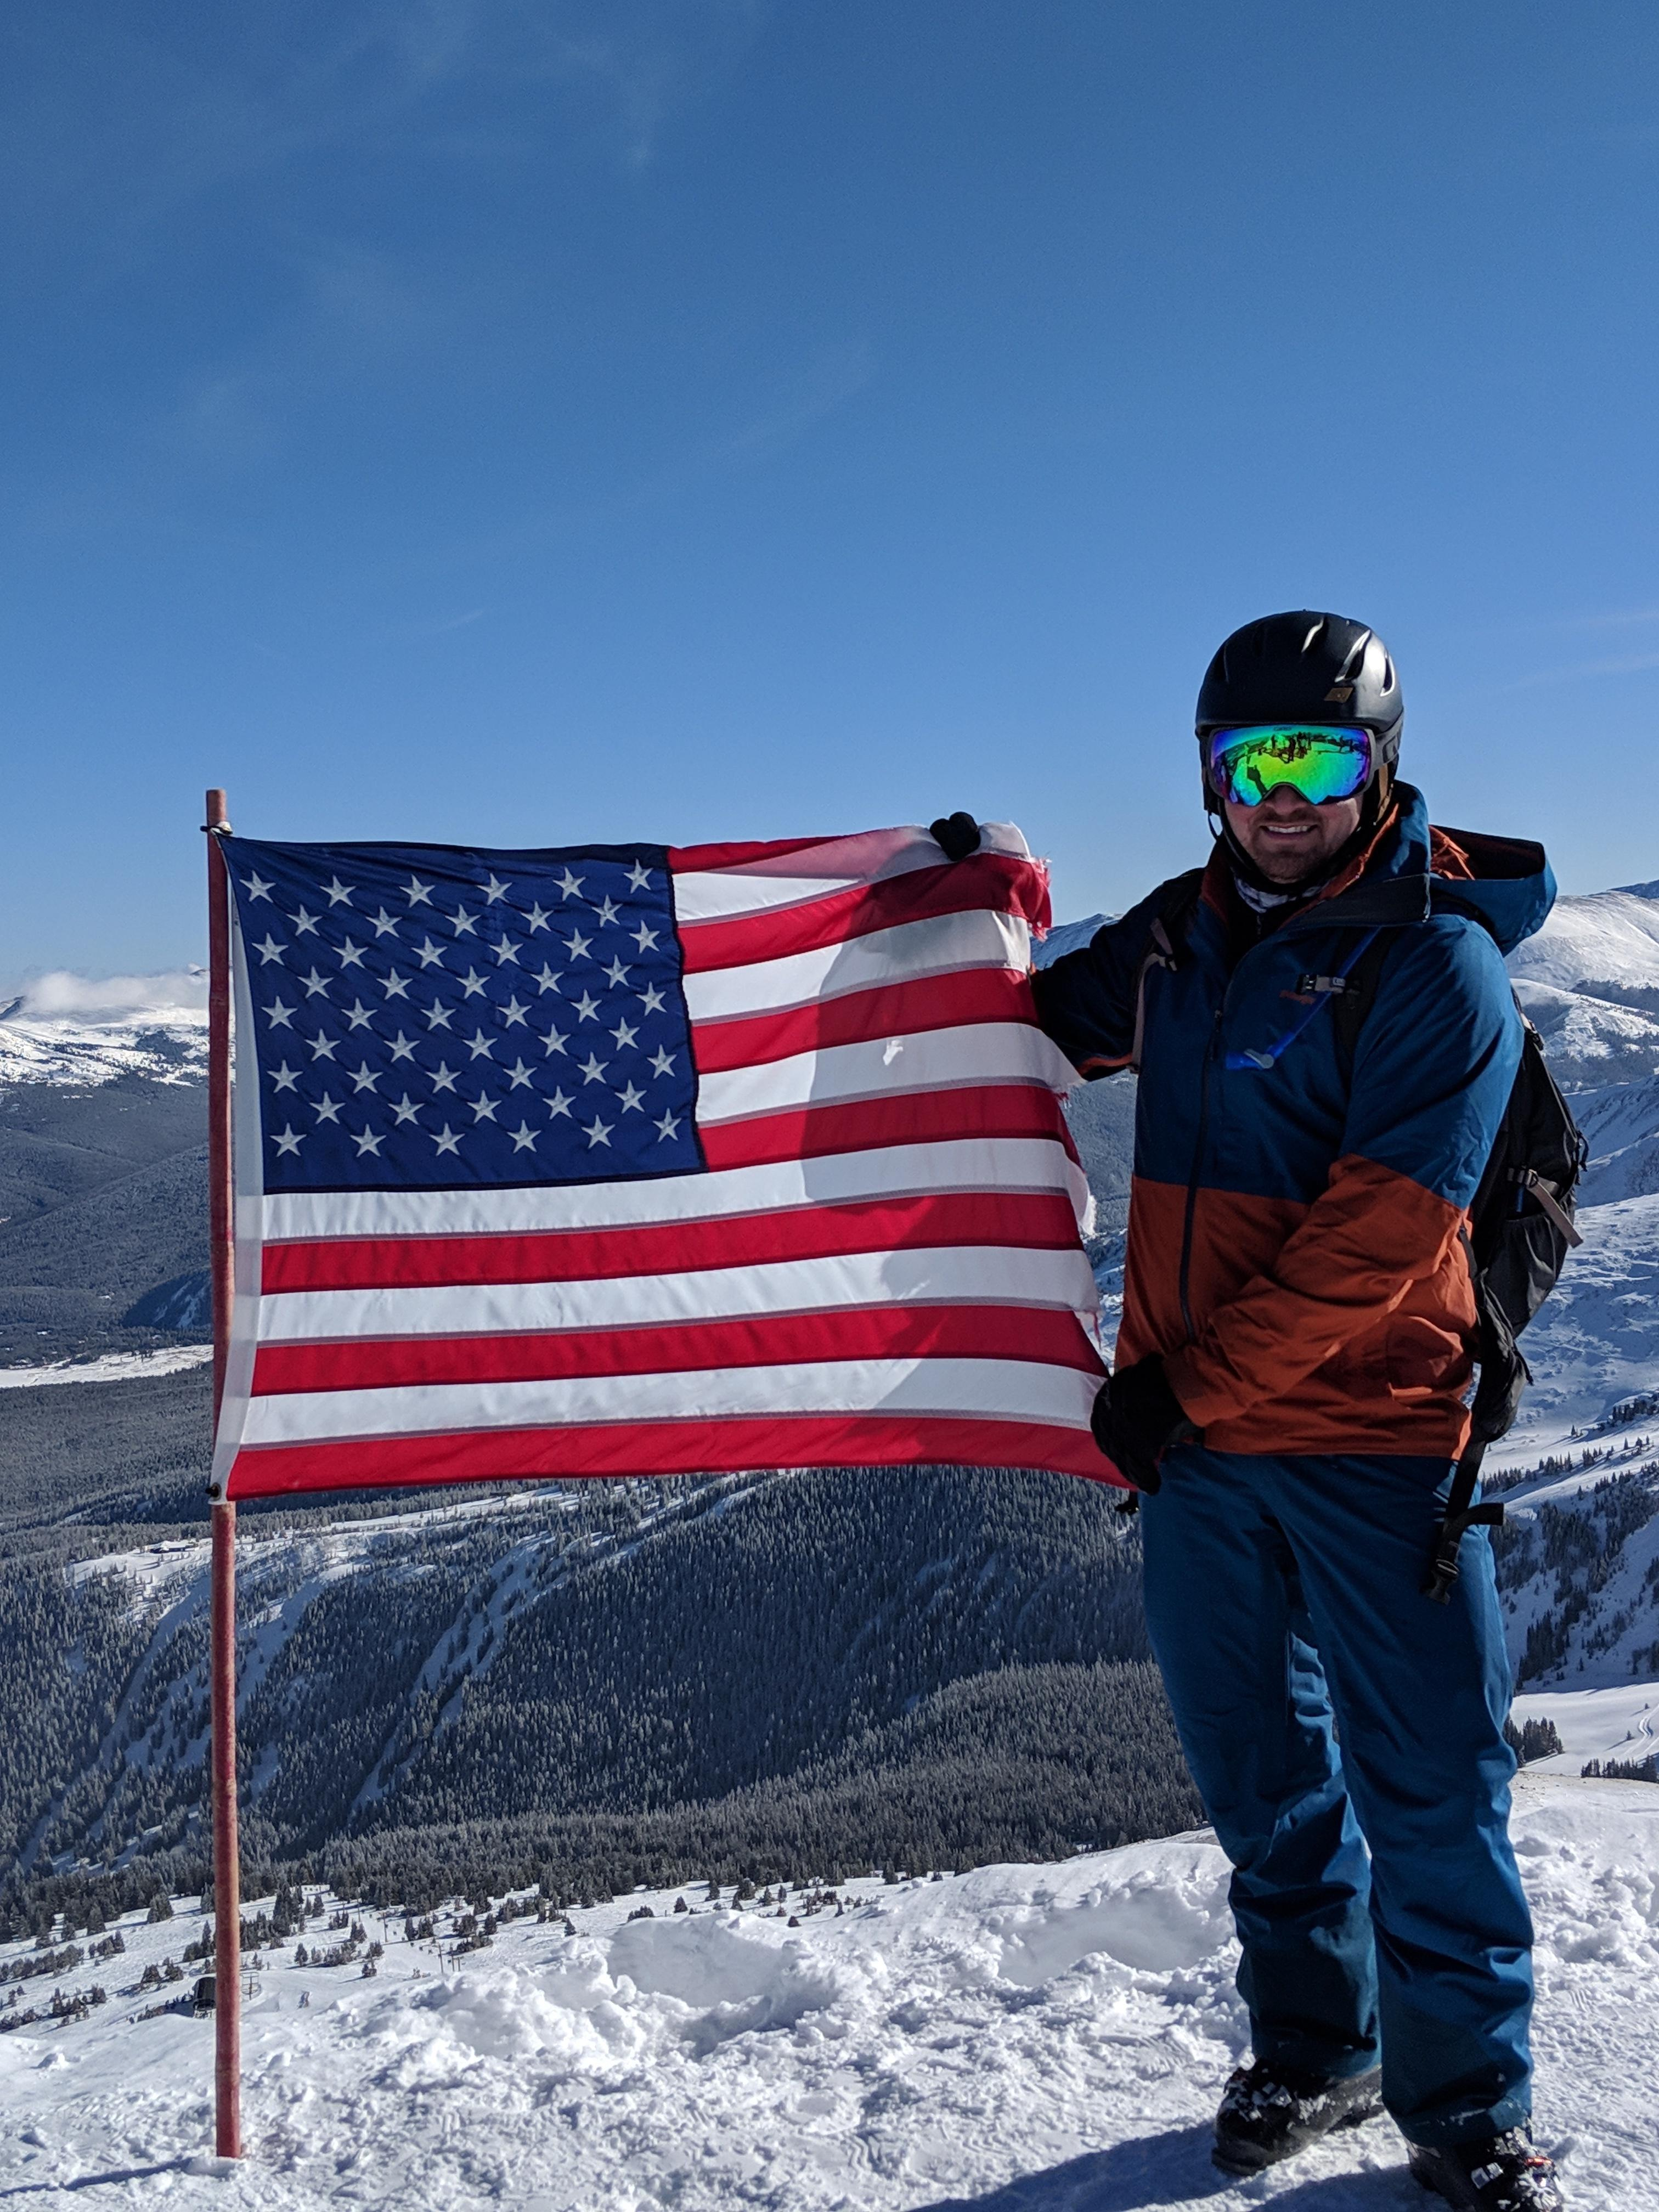 My 'happy place'... The top of Peak 8 at Breckenridge!